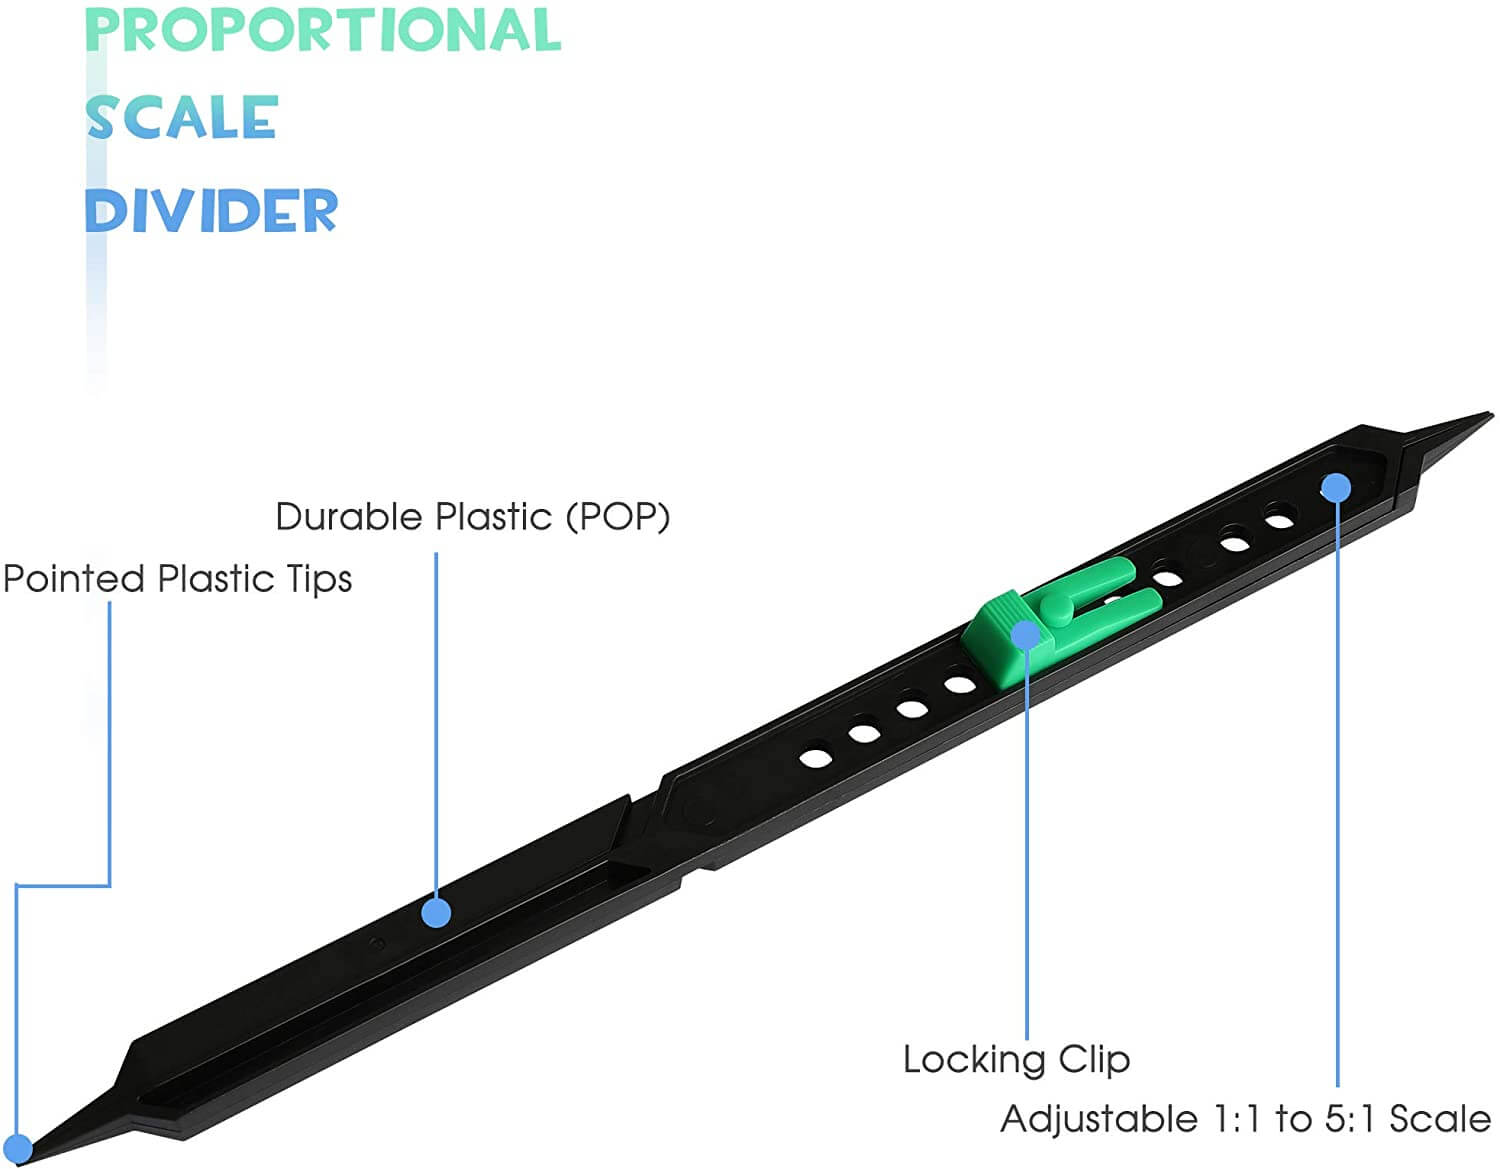 proportional scale divider yakor 2